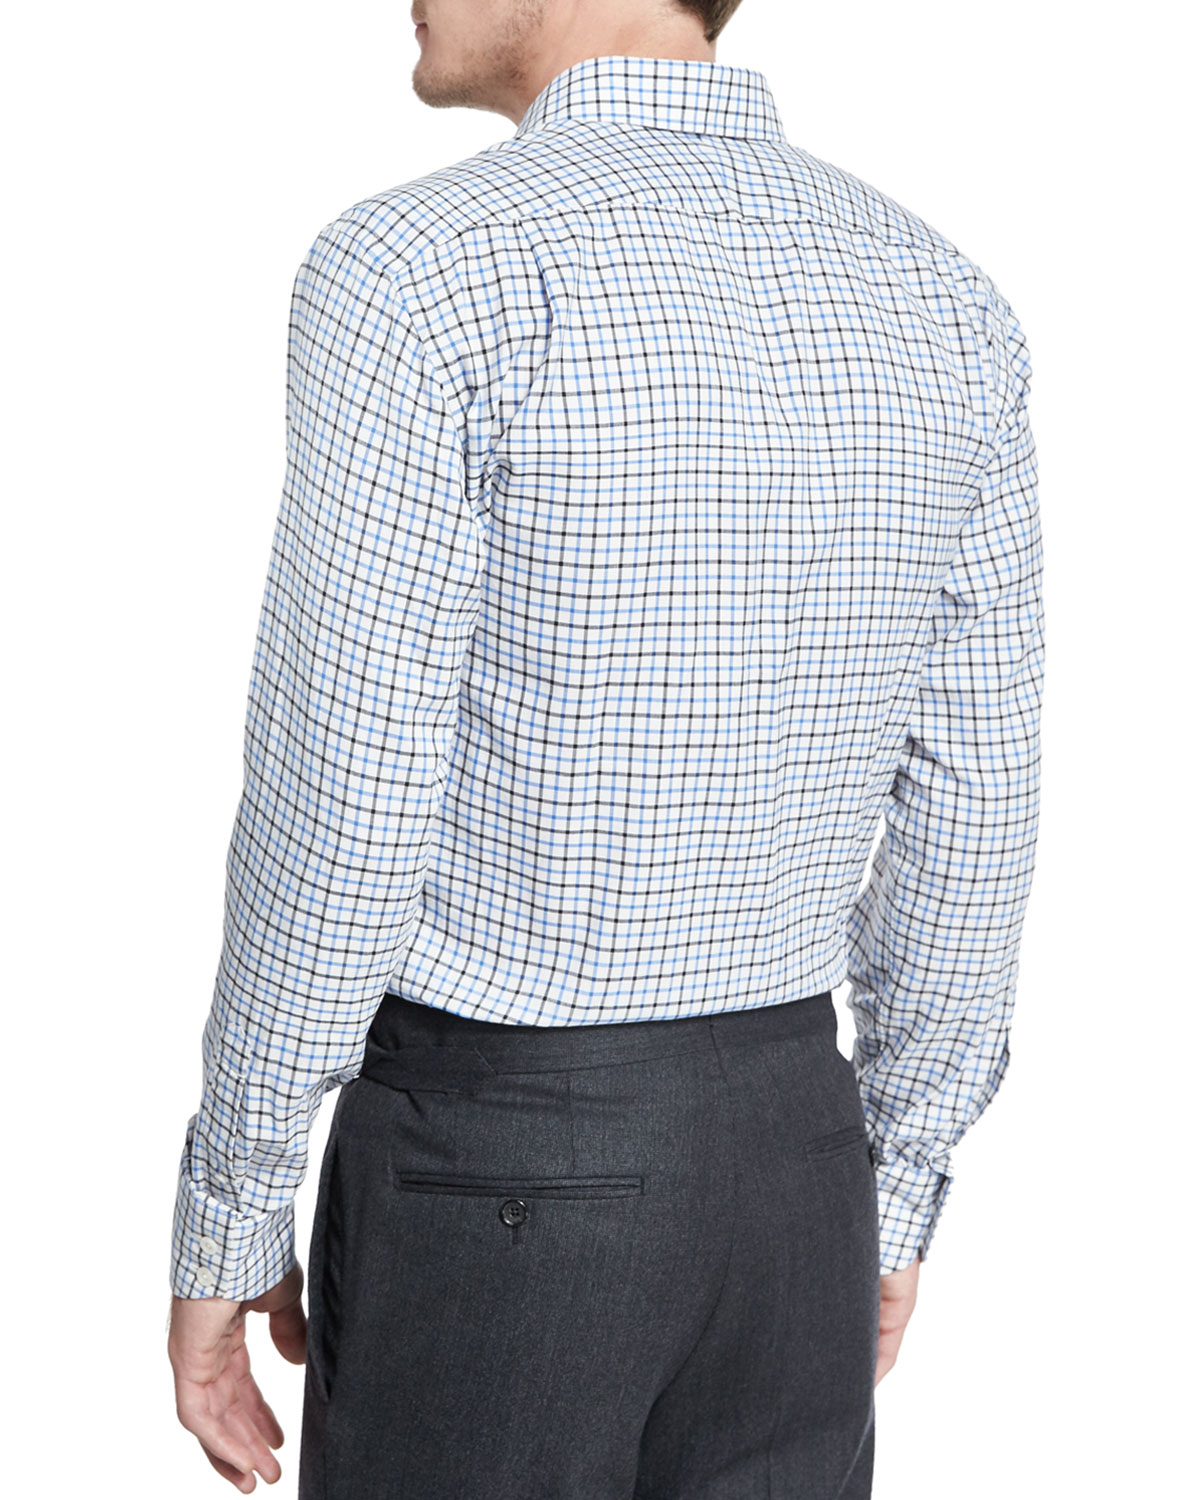 Tom ford tattersall check dress shirt in teal for men for Teal mens dress shirt